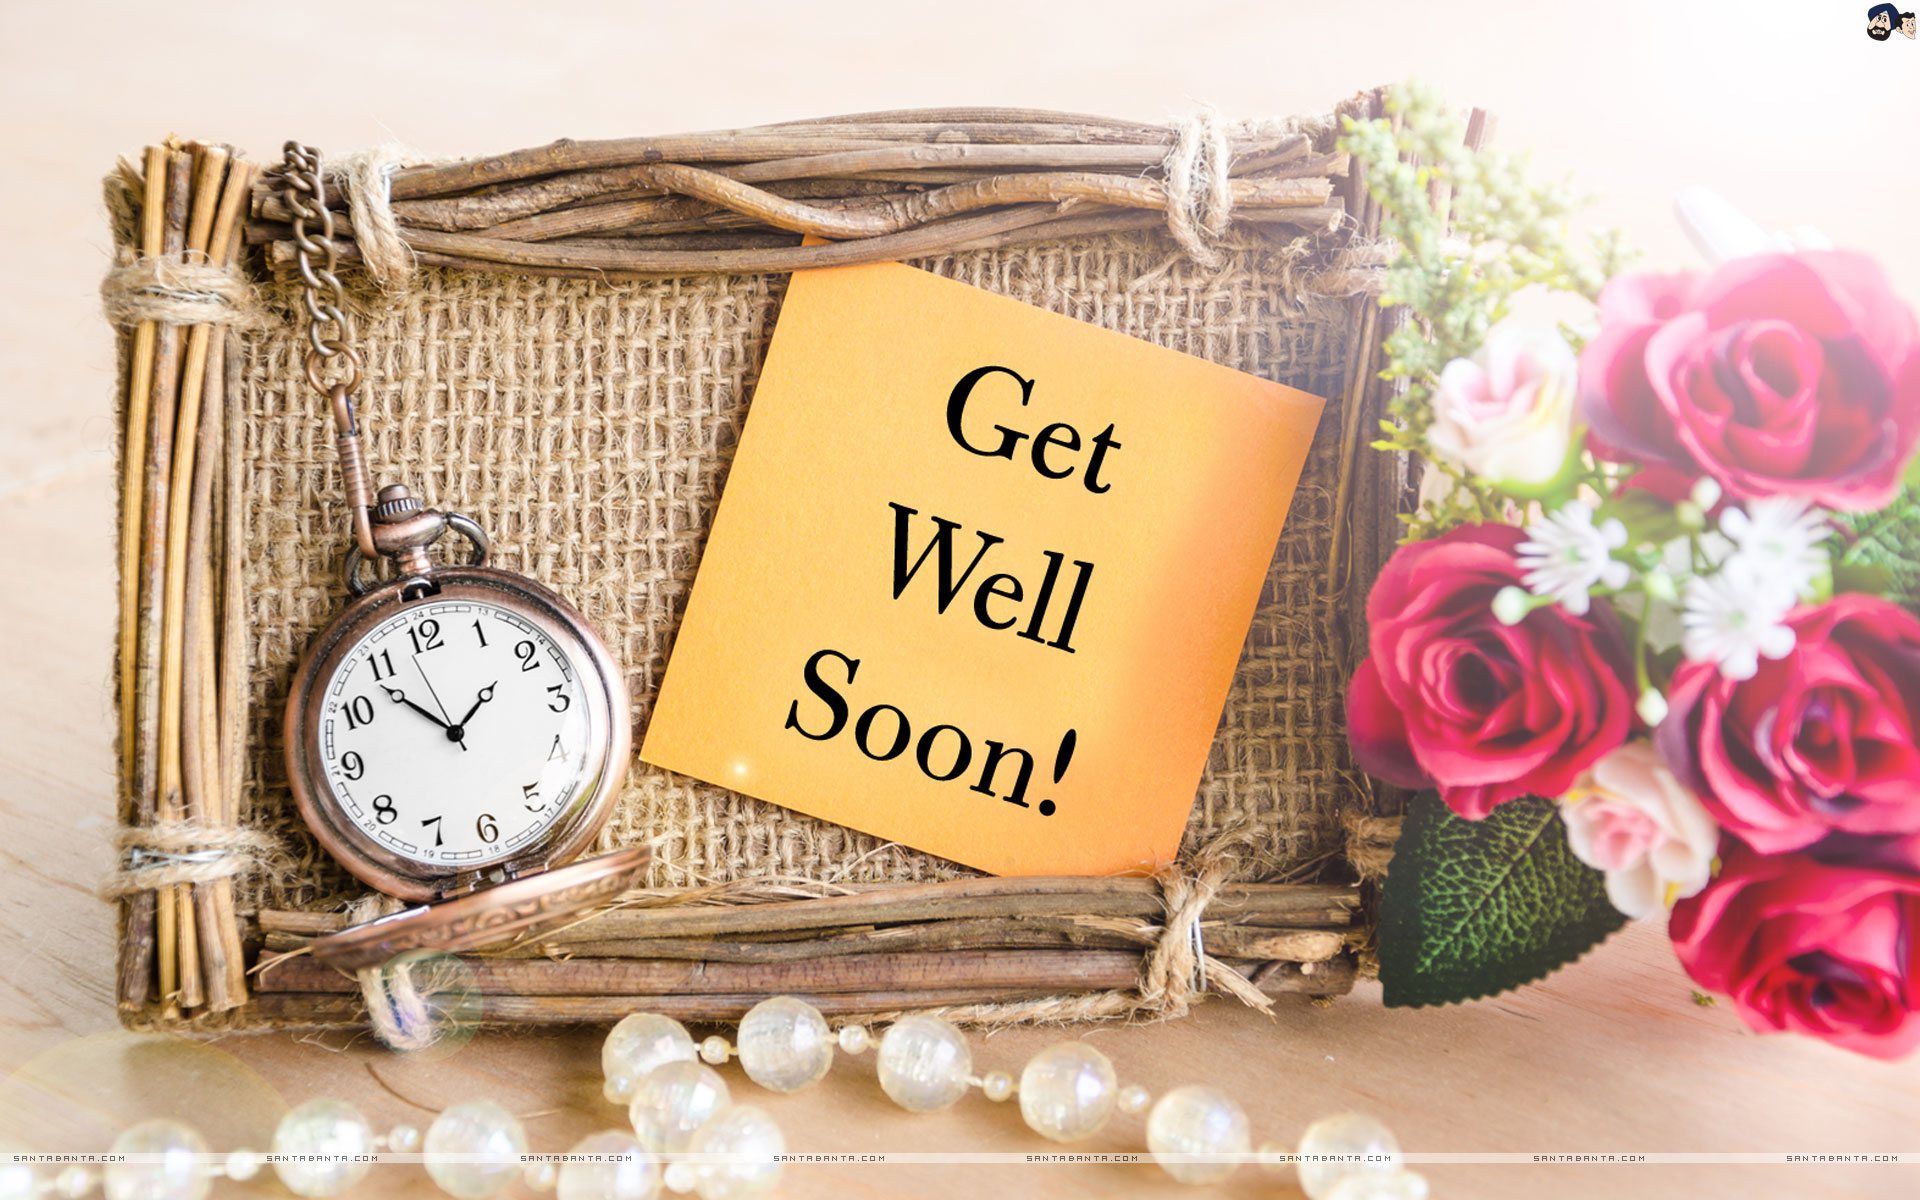 Get Well Soon - Rose Get Well Soon , HD Wallpaper & Backgrounds